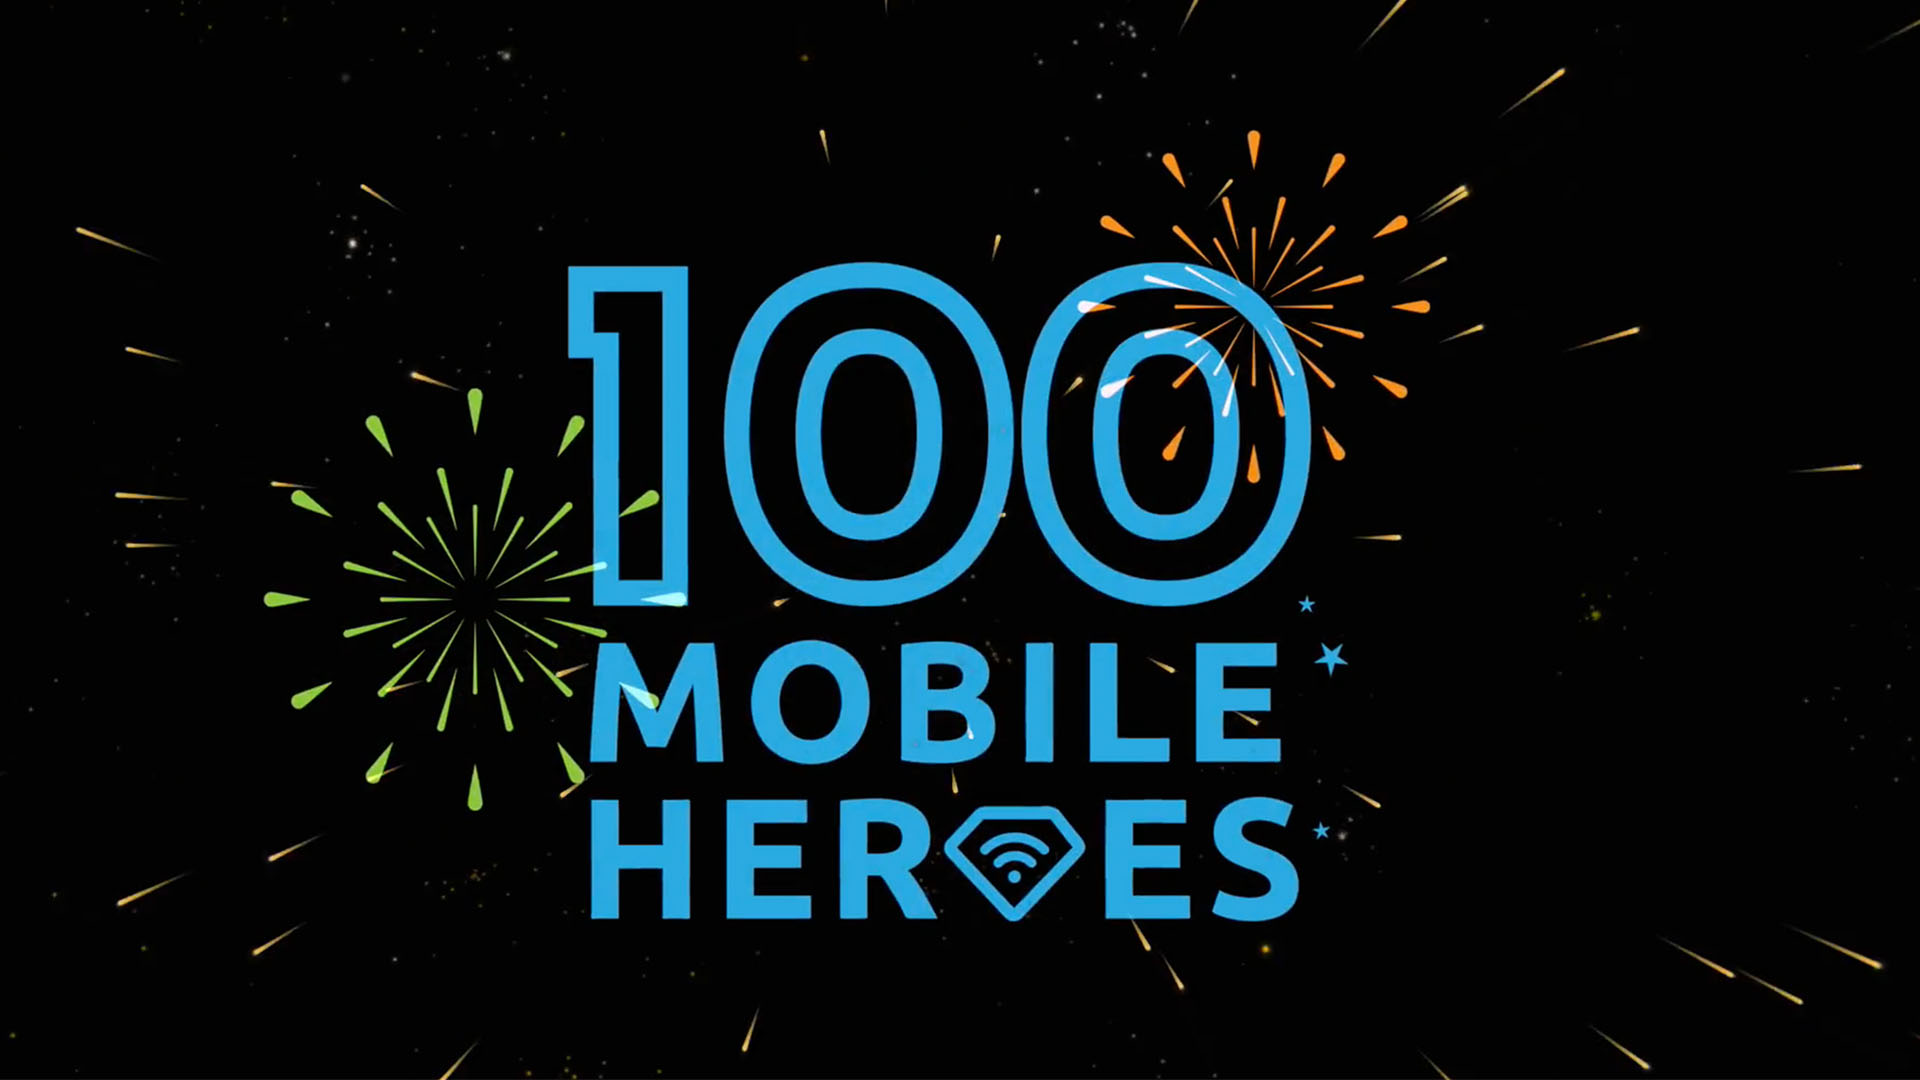 100 mobile heroes logo with fireworks on a black background